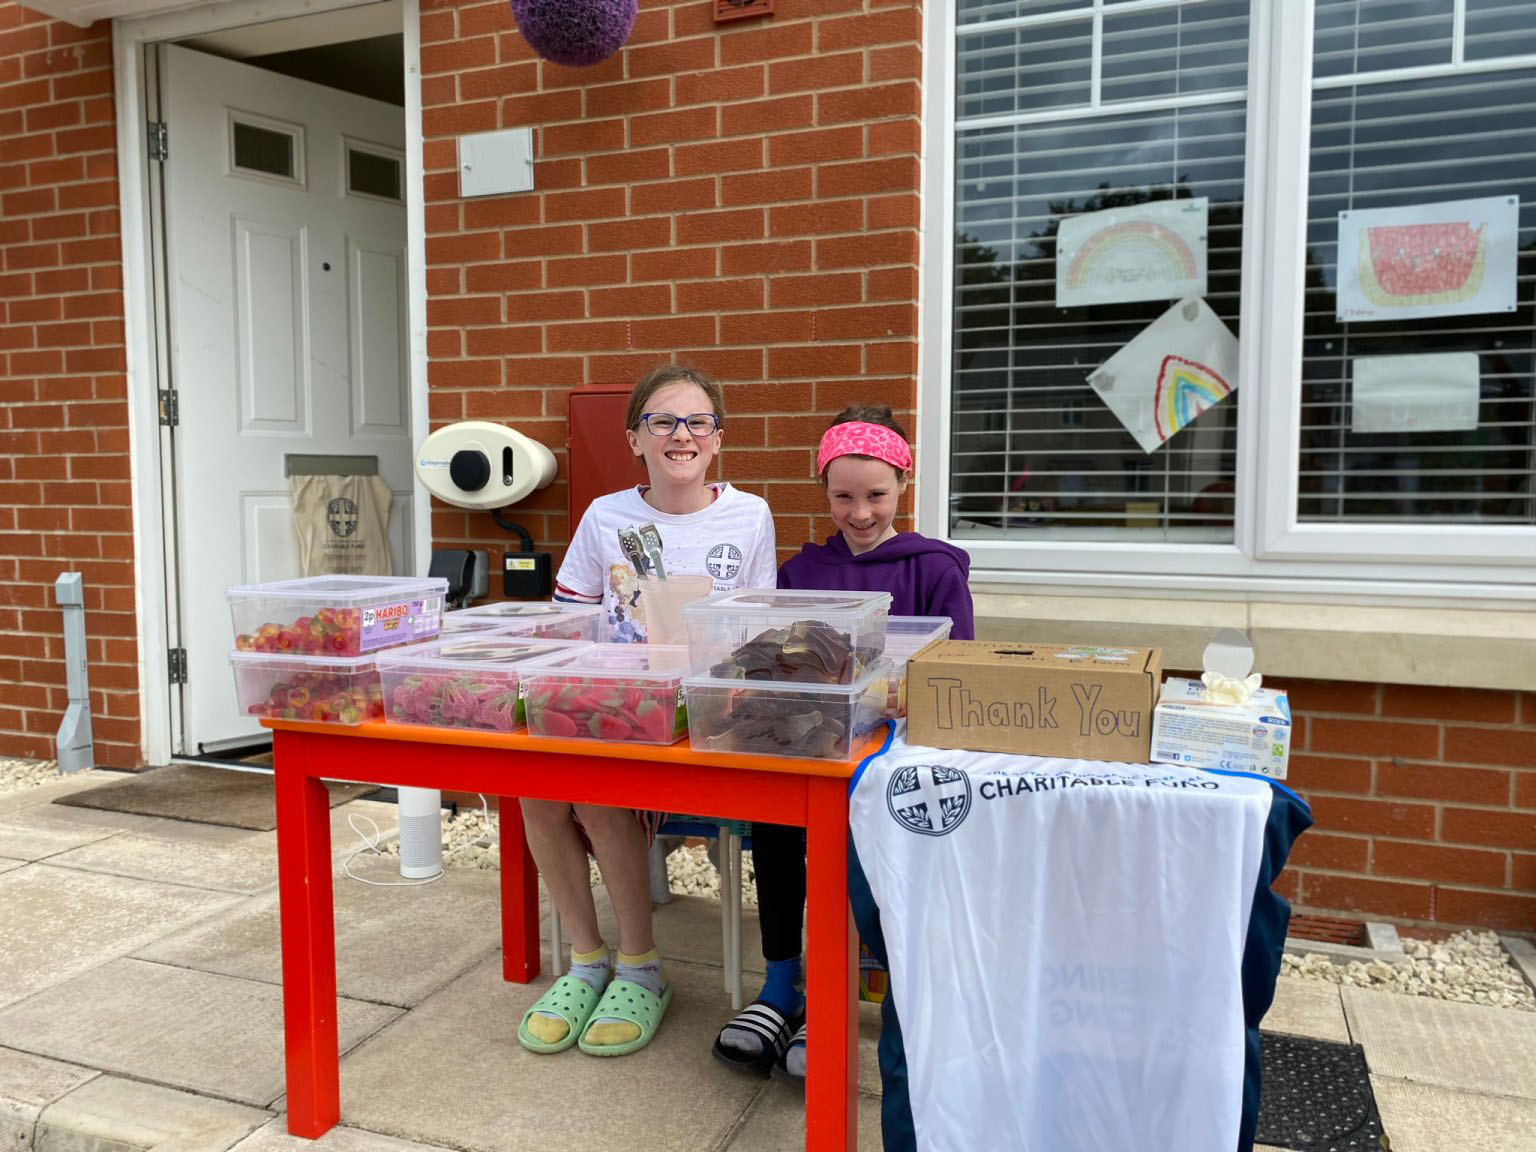 Young patient raises vital funds for hospital charity